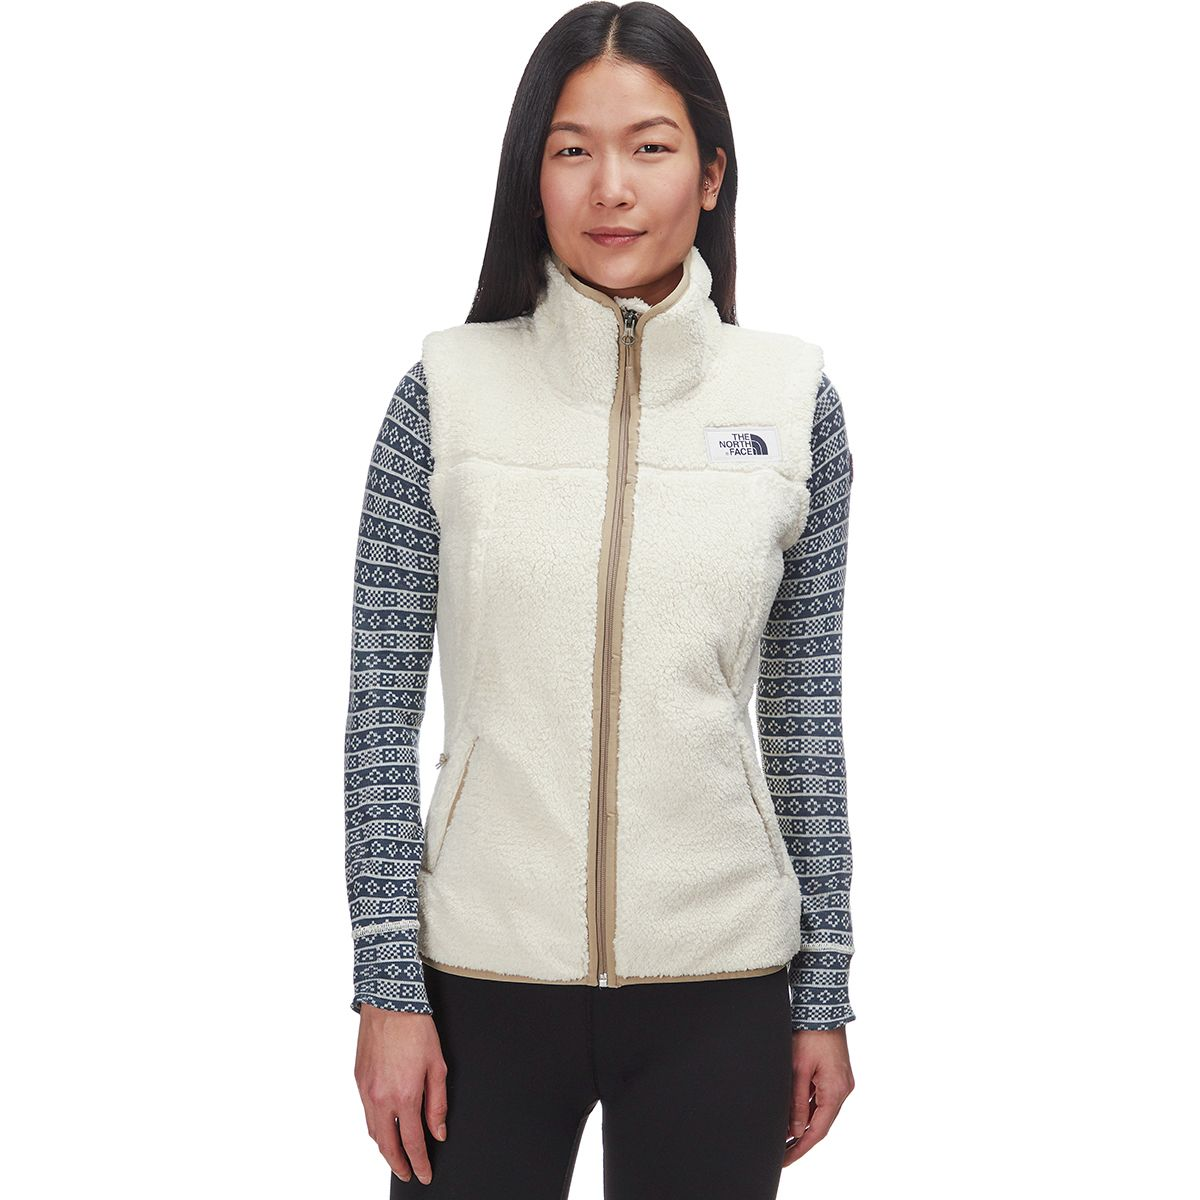 The North Face - Campshire Fleece Vest - Women's - Vintage White/Dune Beige